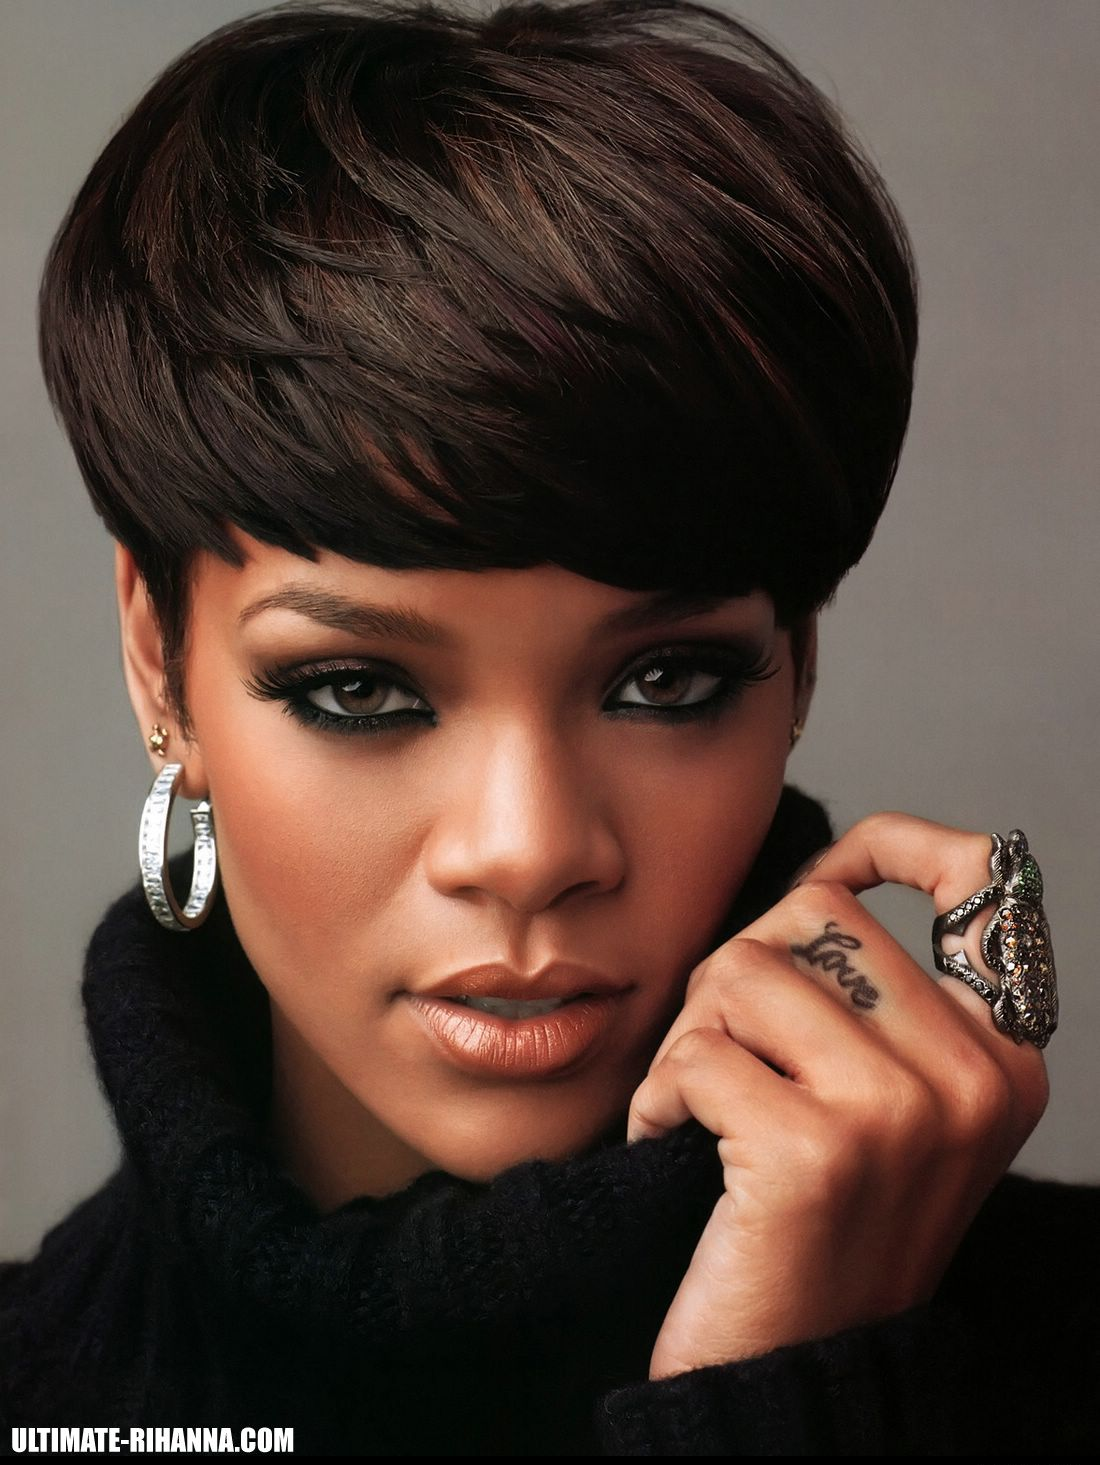 Fashion style Short rihanna hair cut for woman